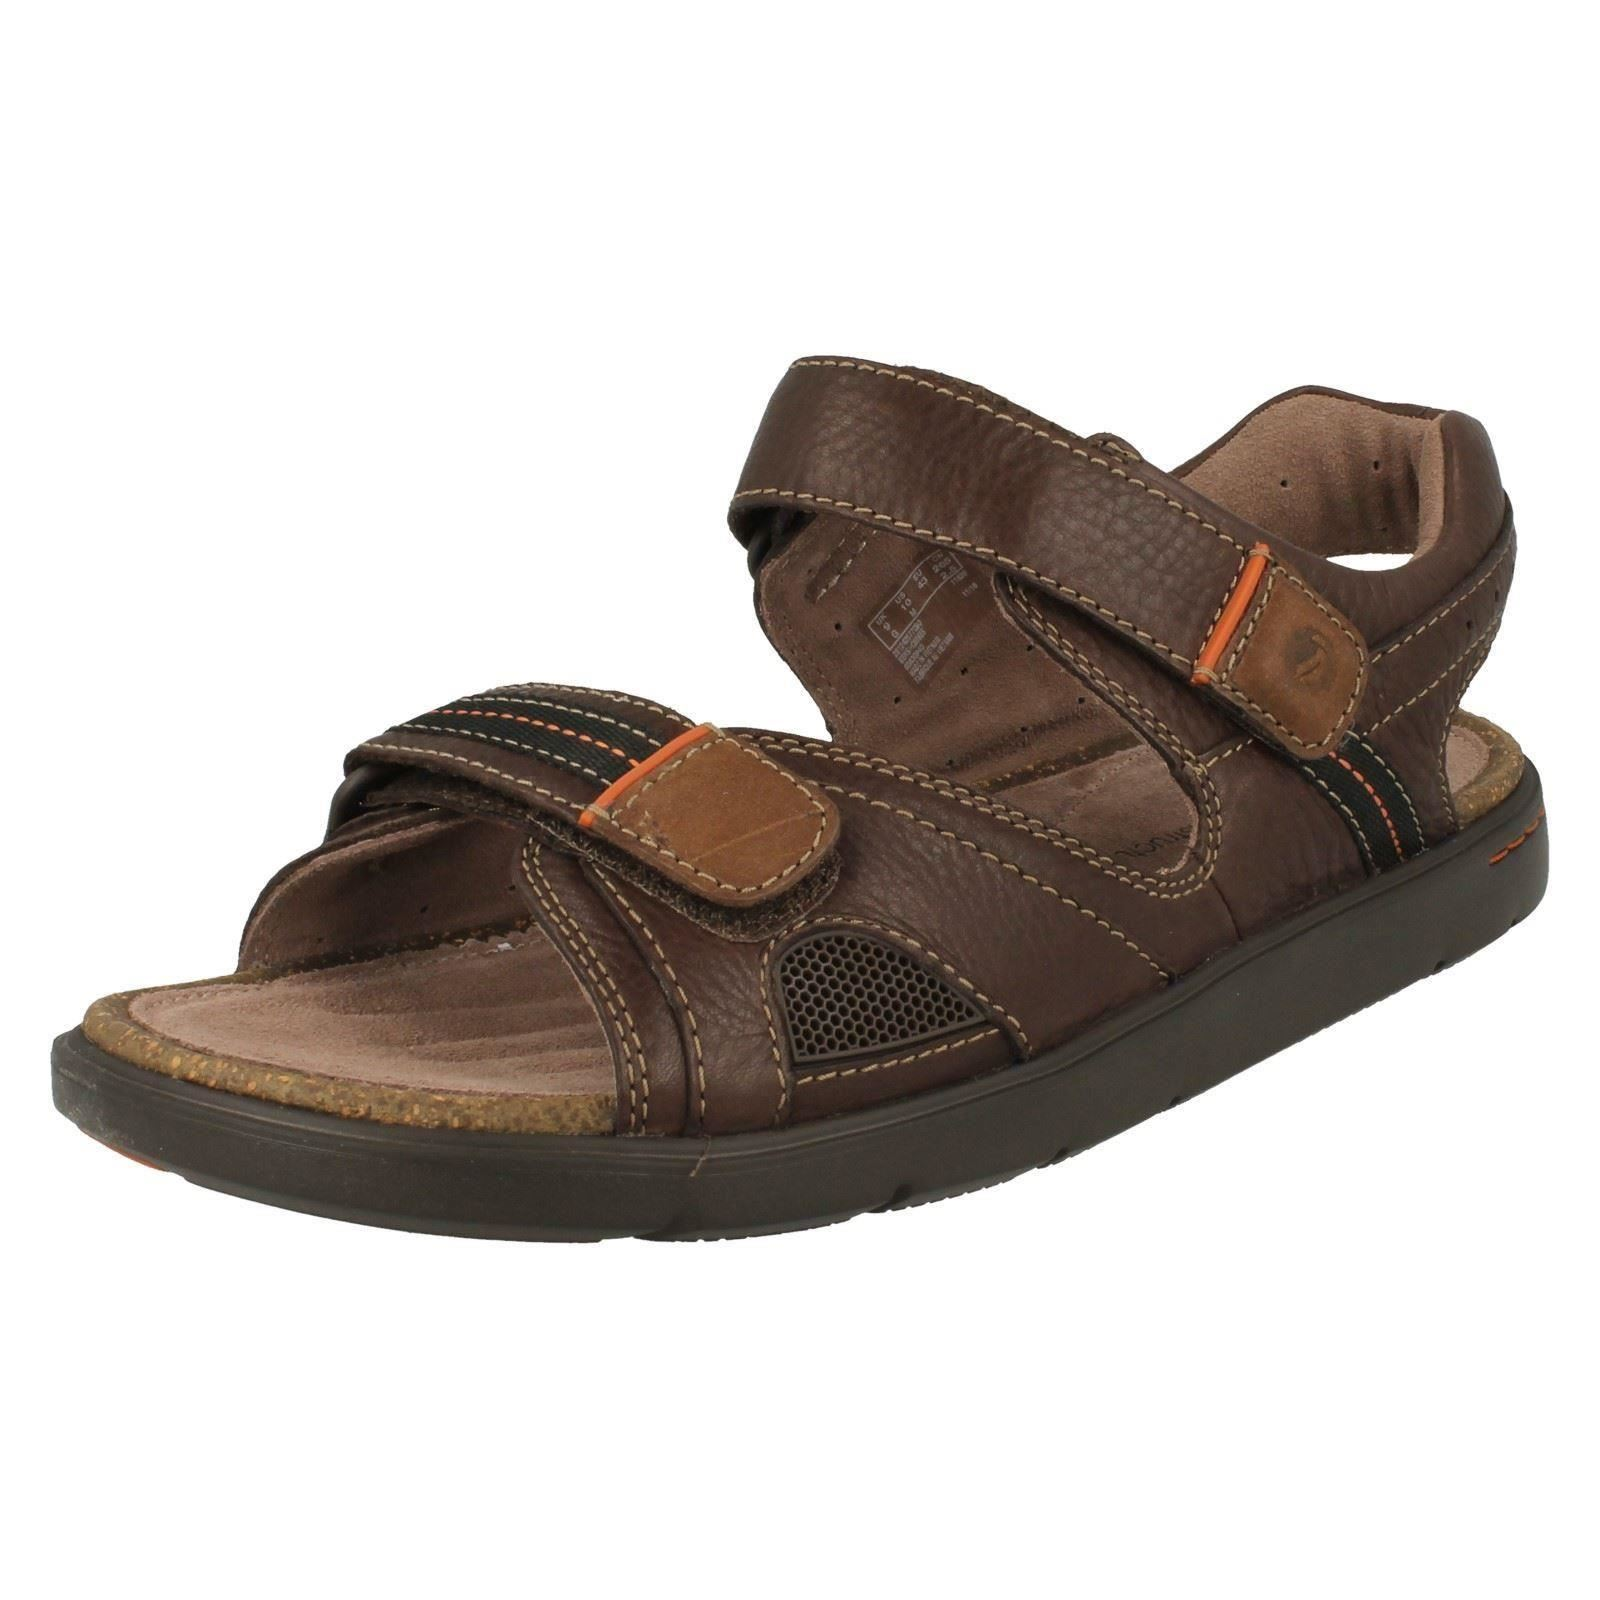 Mens Unstructured by Clarks Open Toe Straped Sandals *Unwilmore Sun*